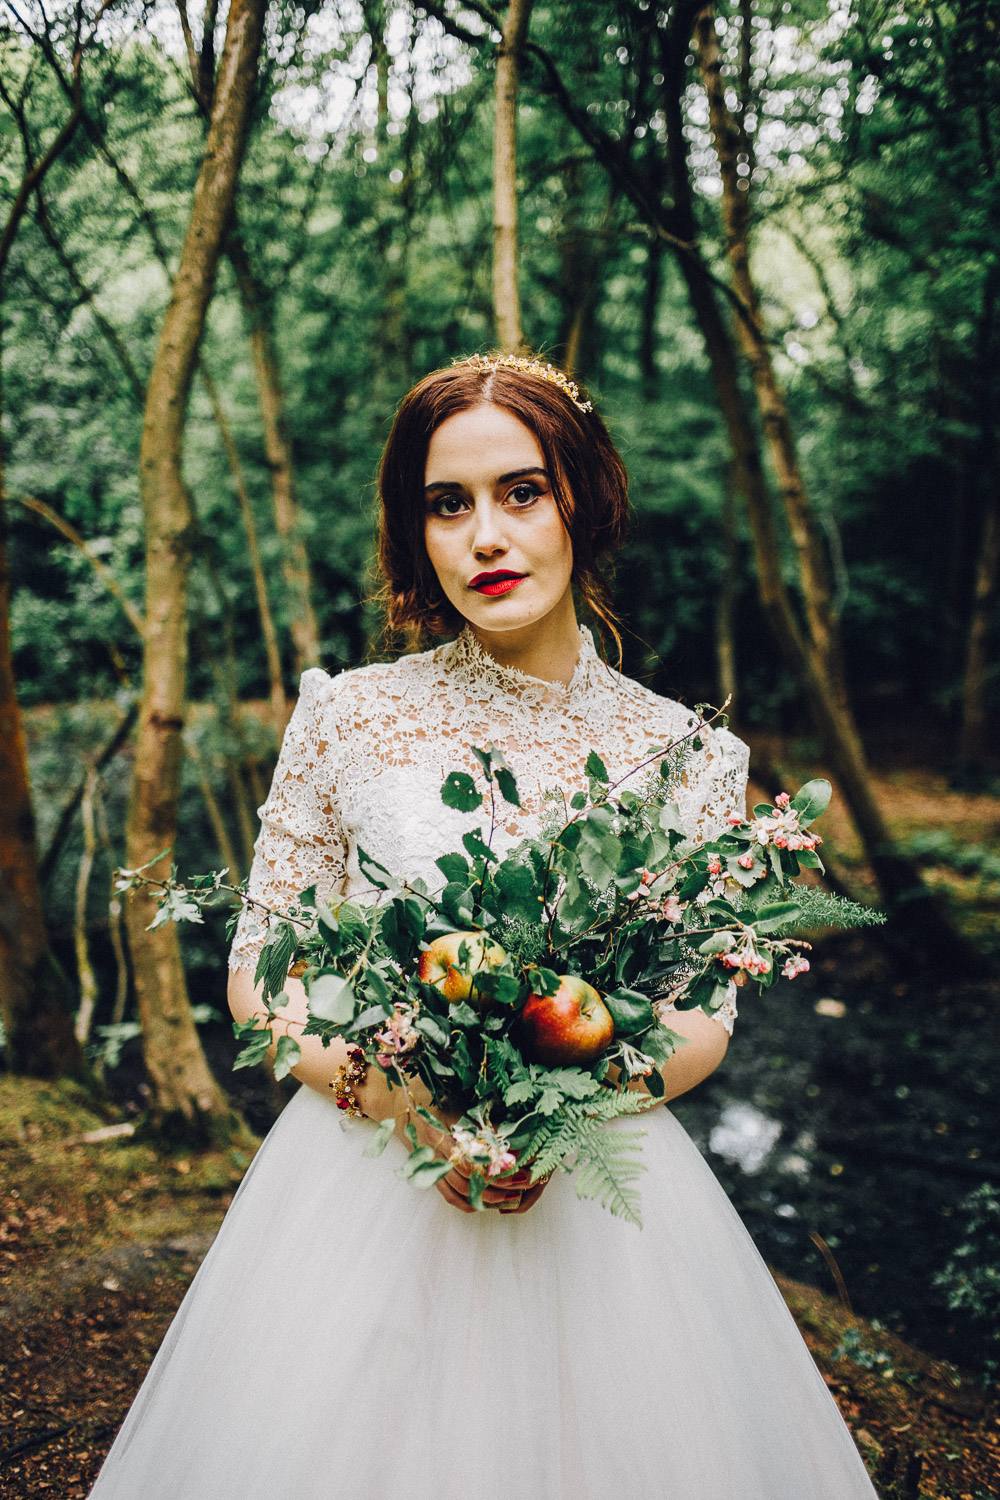 Disney Snow White Bridal Bouquet with Apples  - Alternative Essex Wedding Photographer